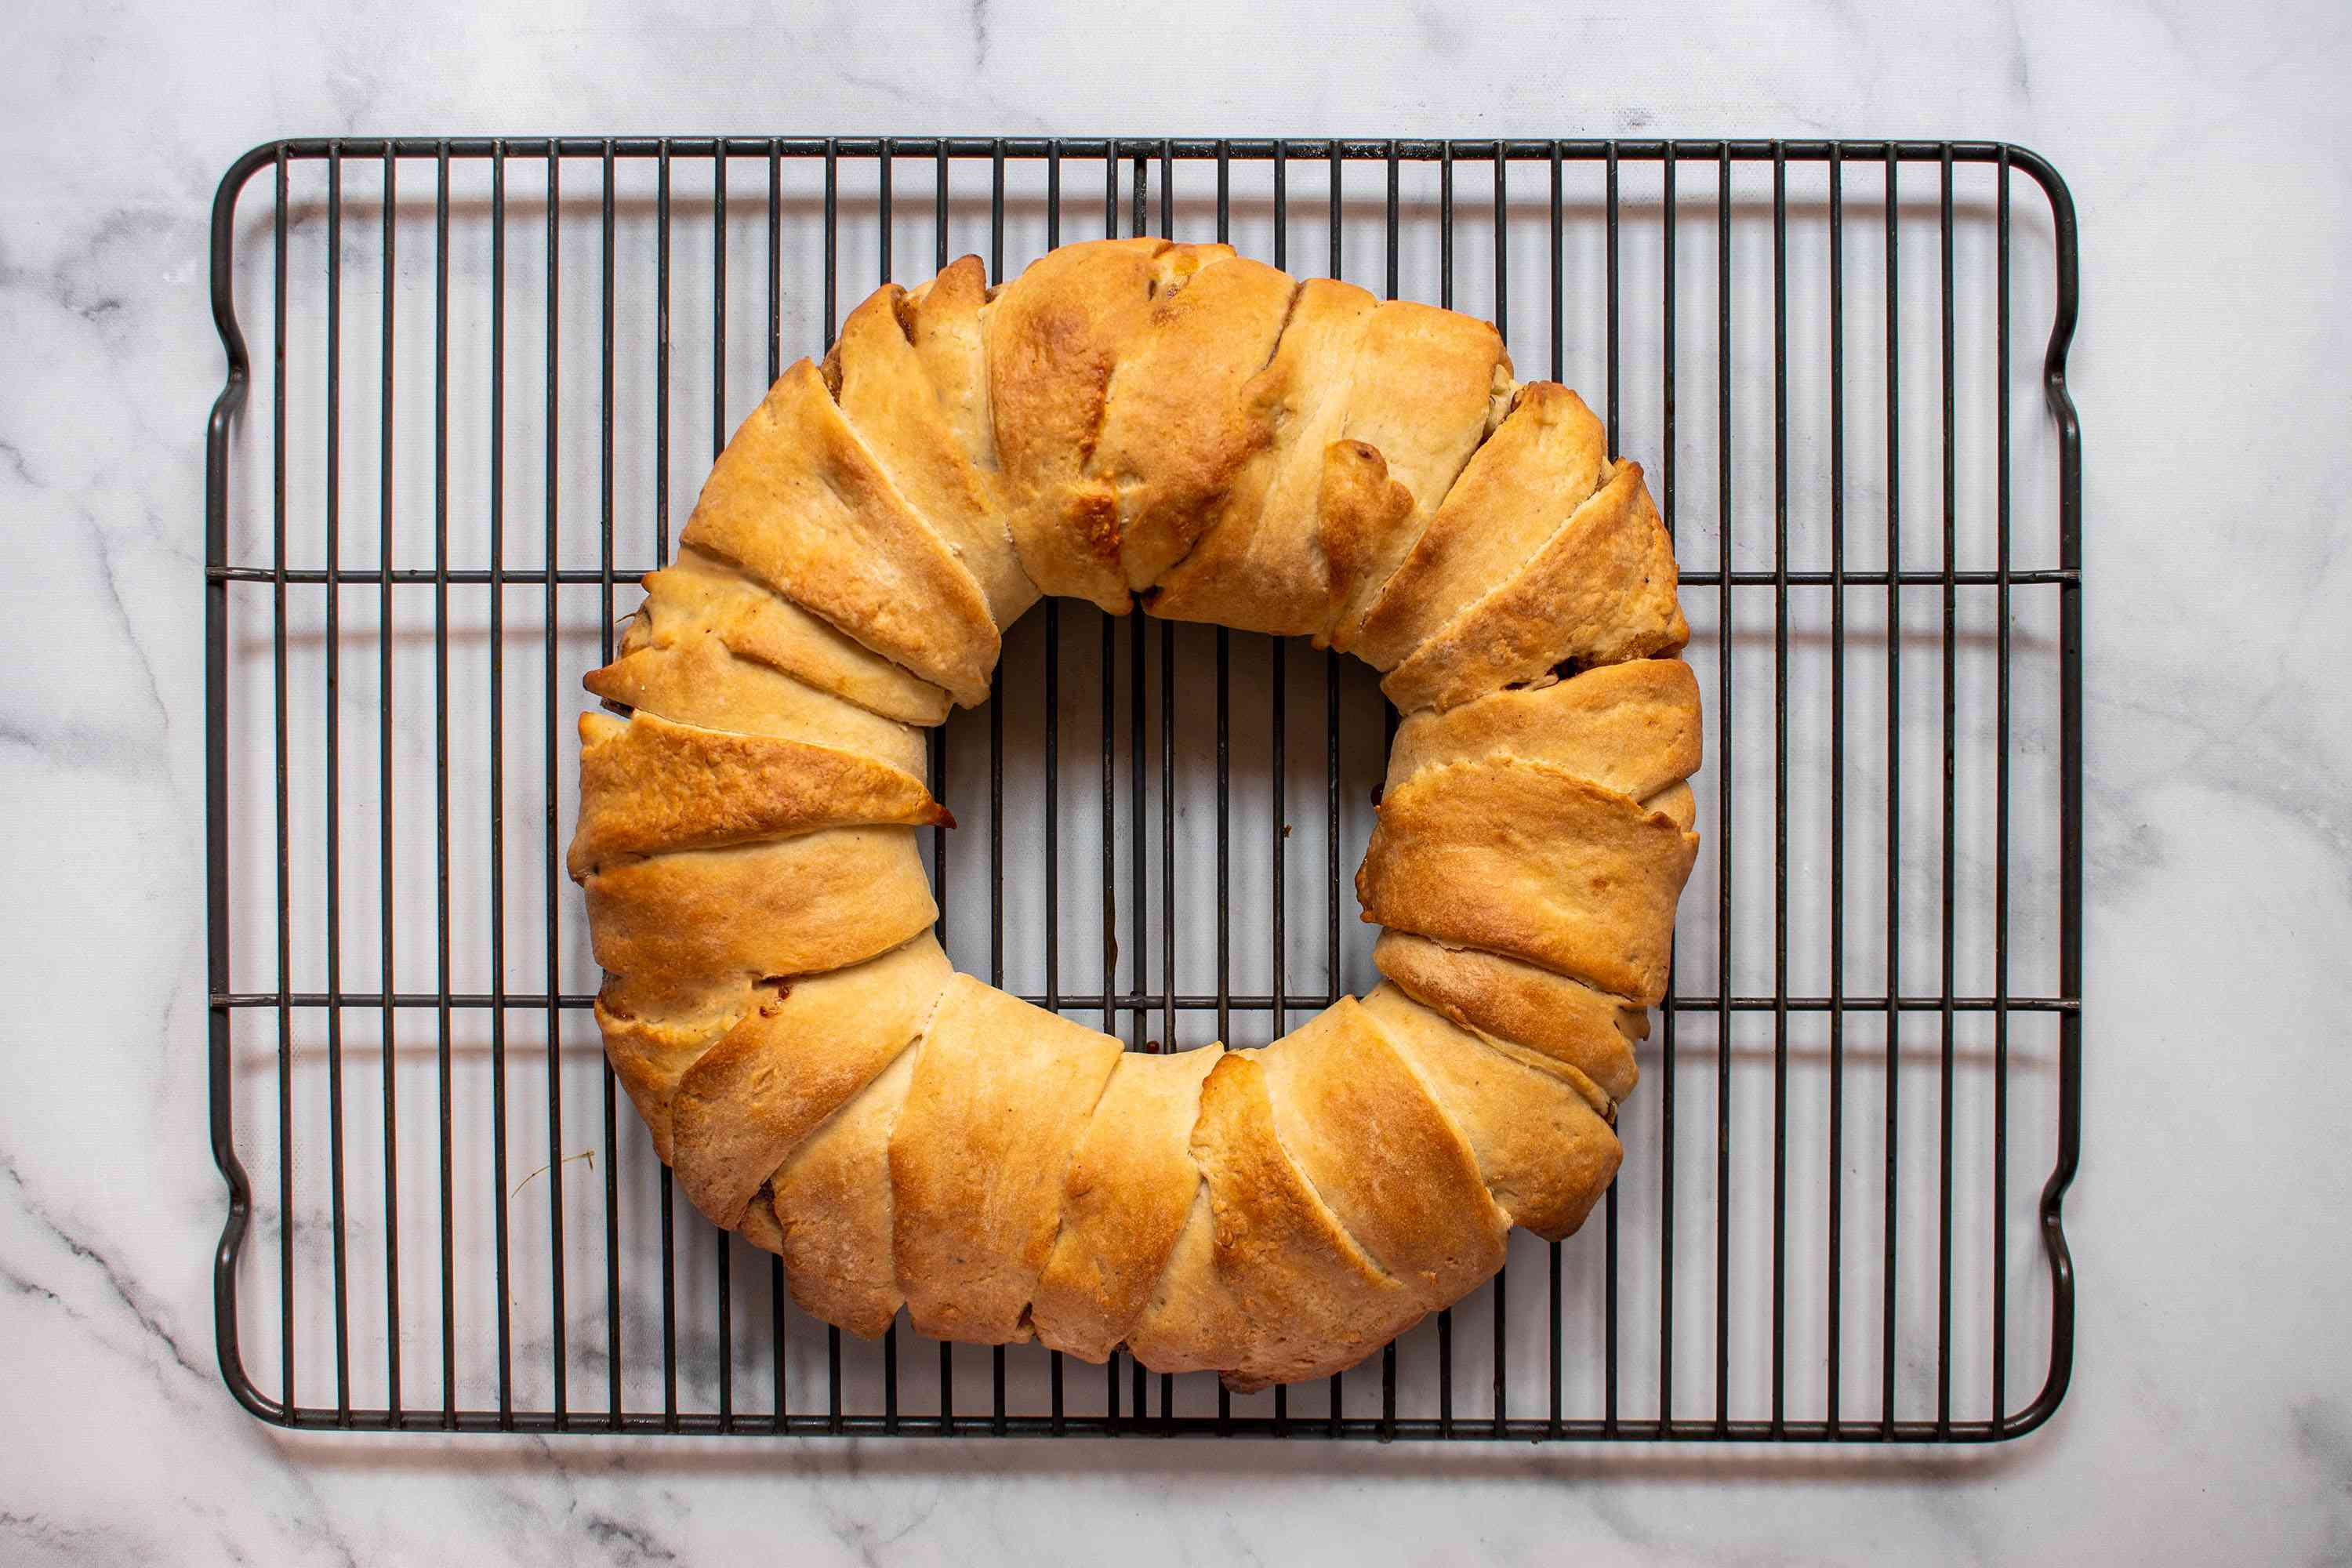 baked king cake on a cooking rack